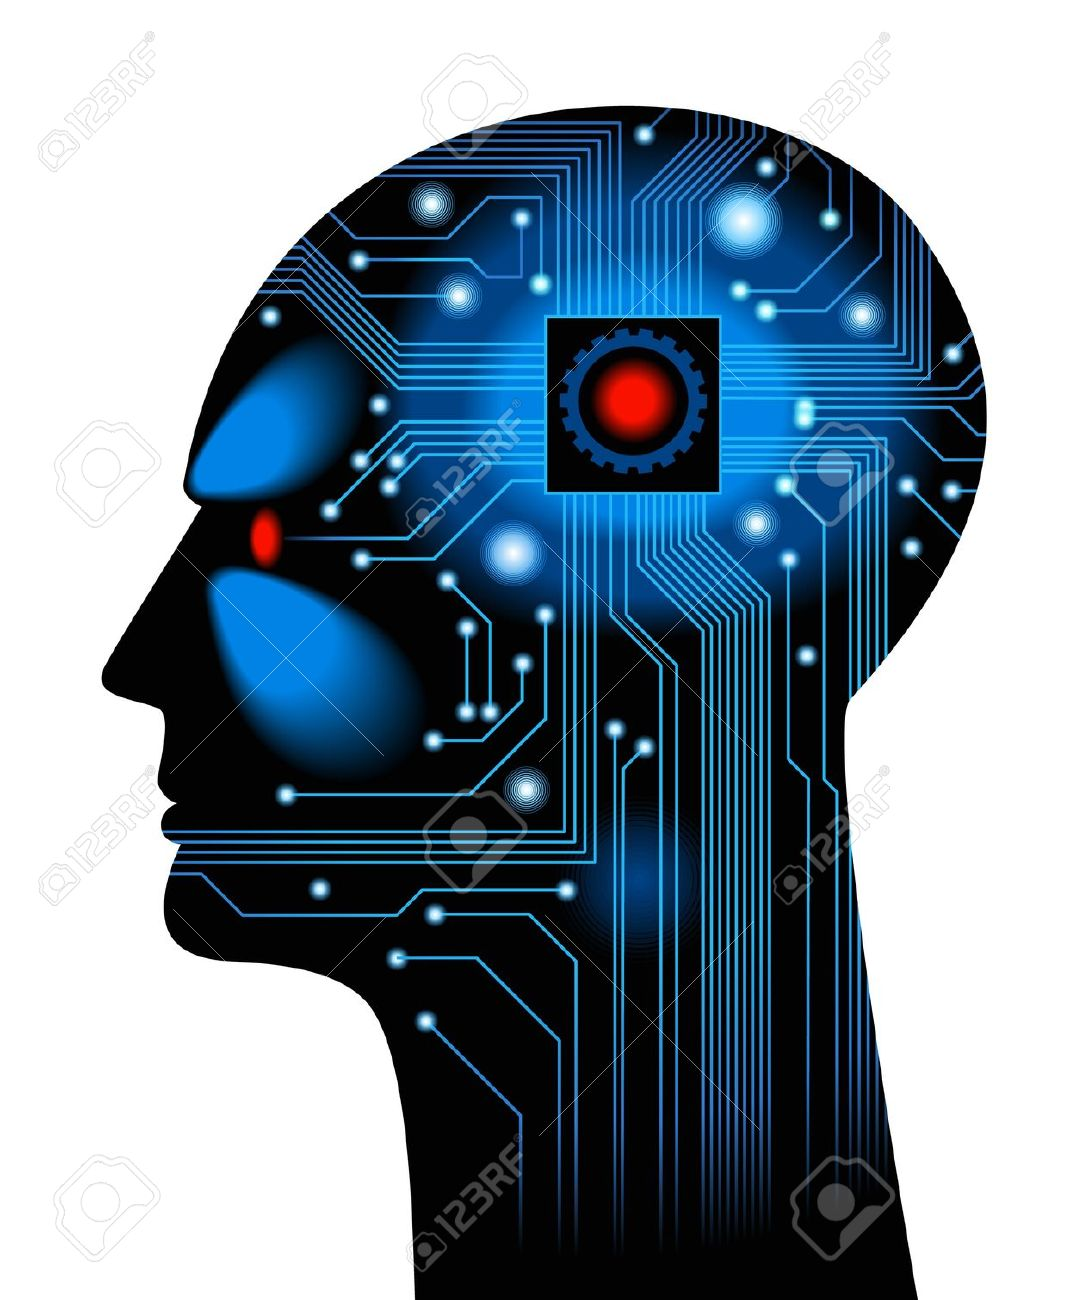 Artificial intelligence clipart.